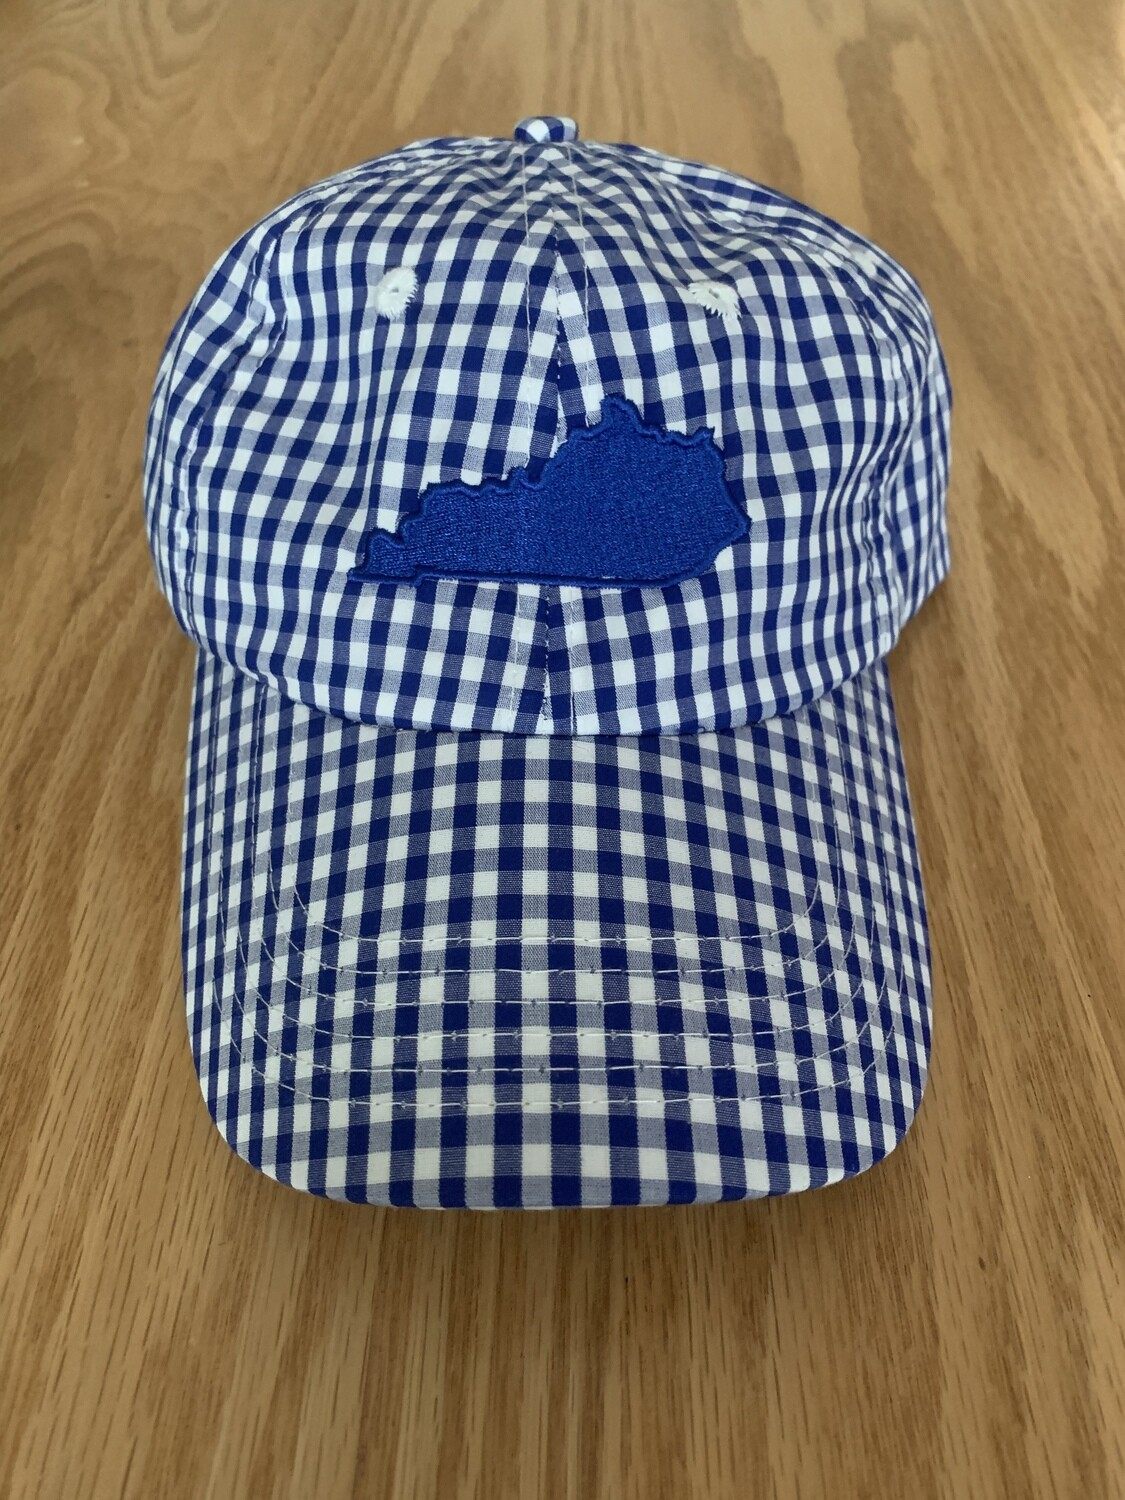 Blue & White Gingham Kentucky Hat